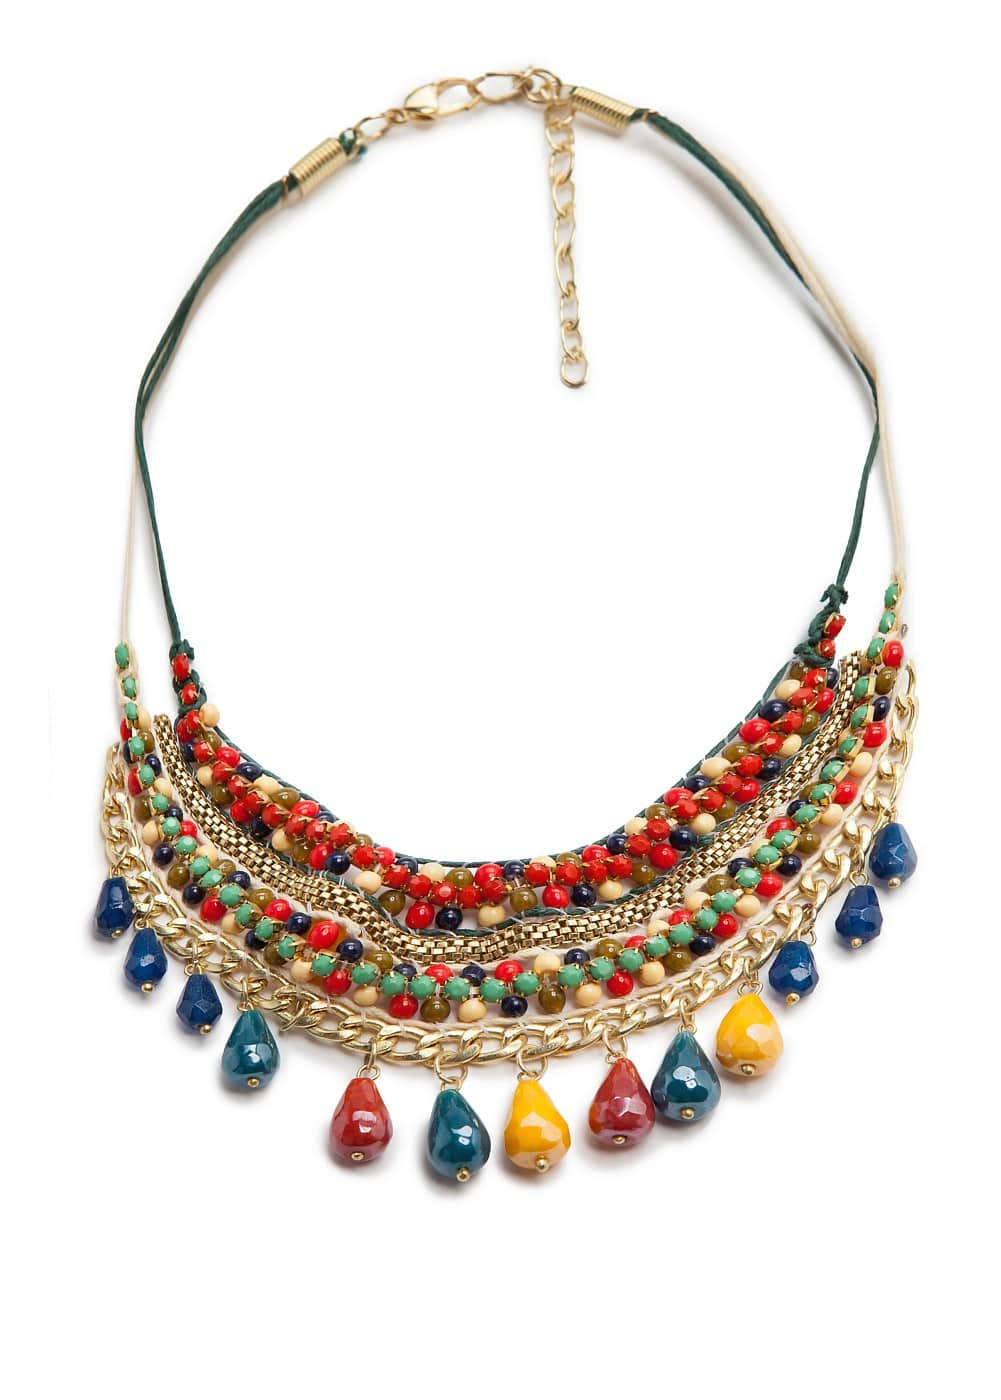 Collar multicolor abalorios